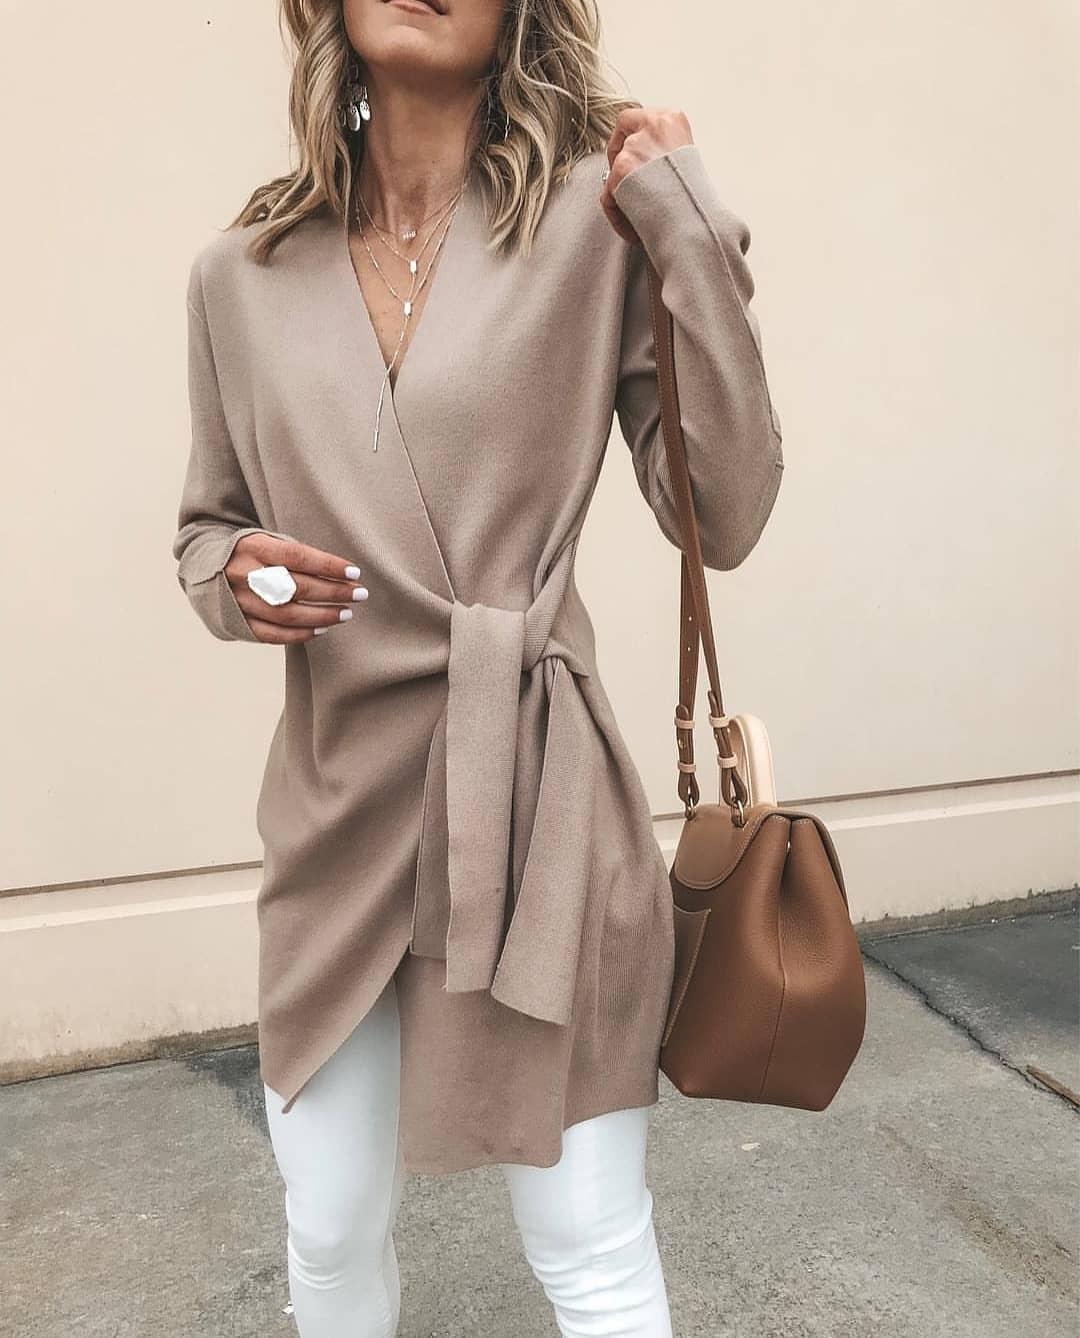 Cream Grey Wrap Cardigan And White Skinny Jeans For Spring 2020